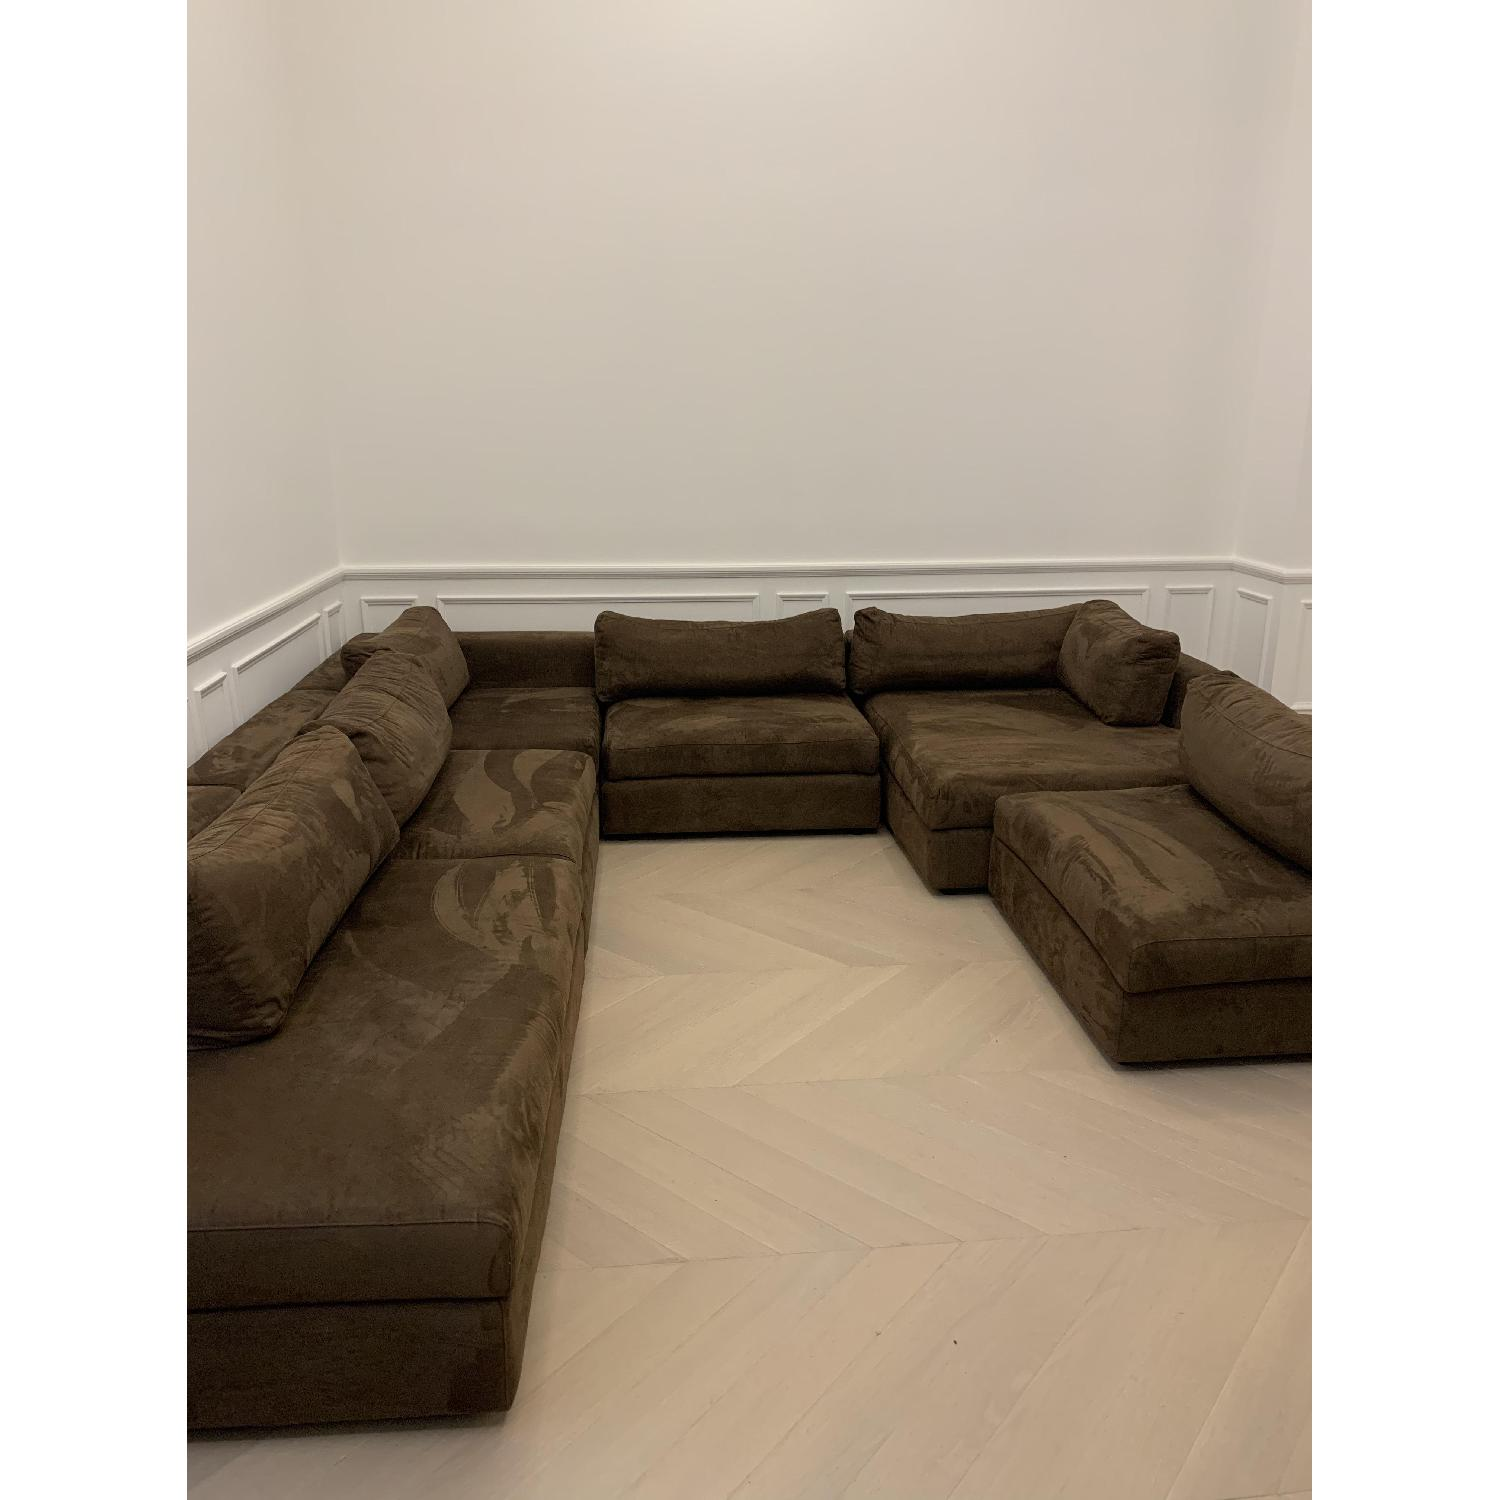 Taylor Made Brown Suede 6-Piece Sectional Sofa - image-7